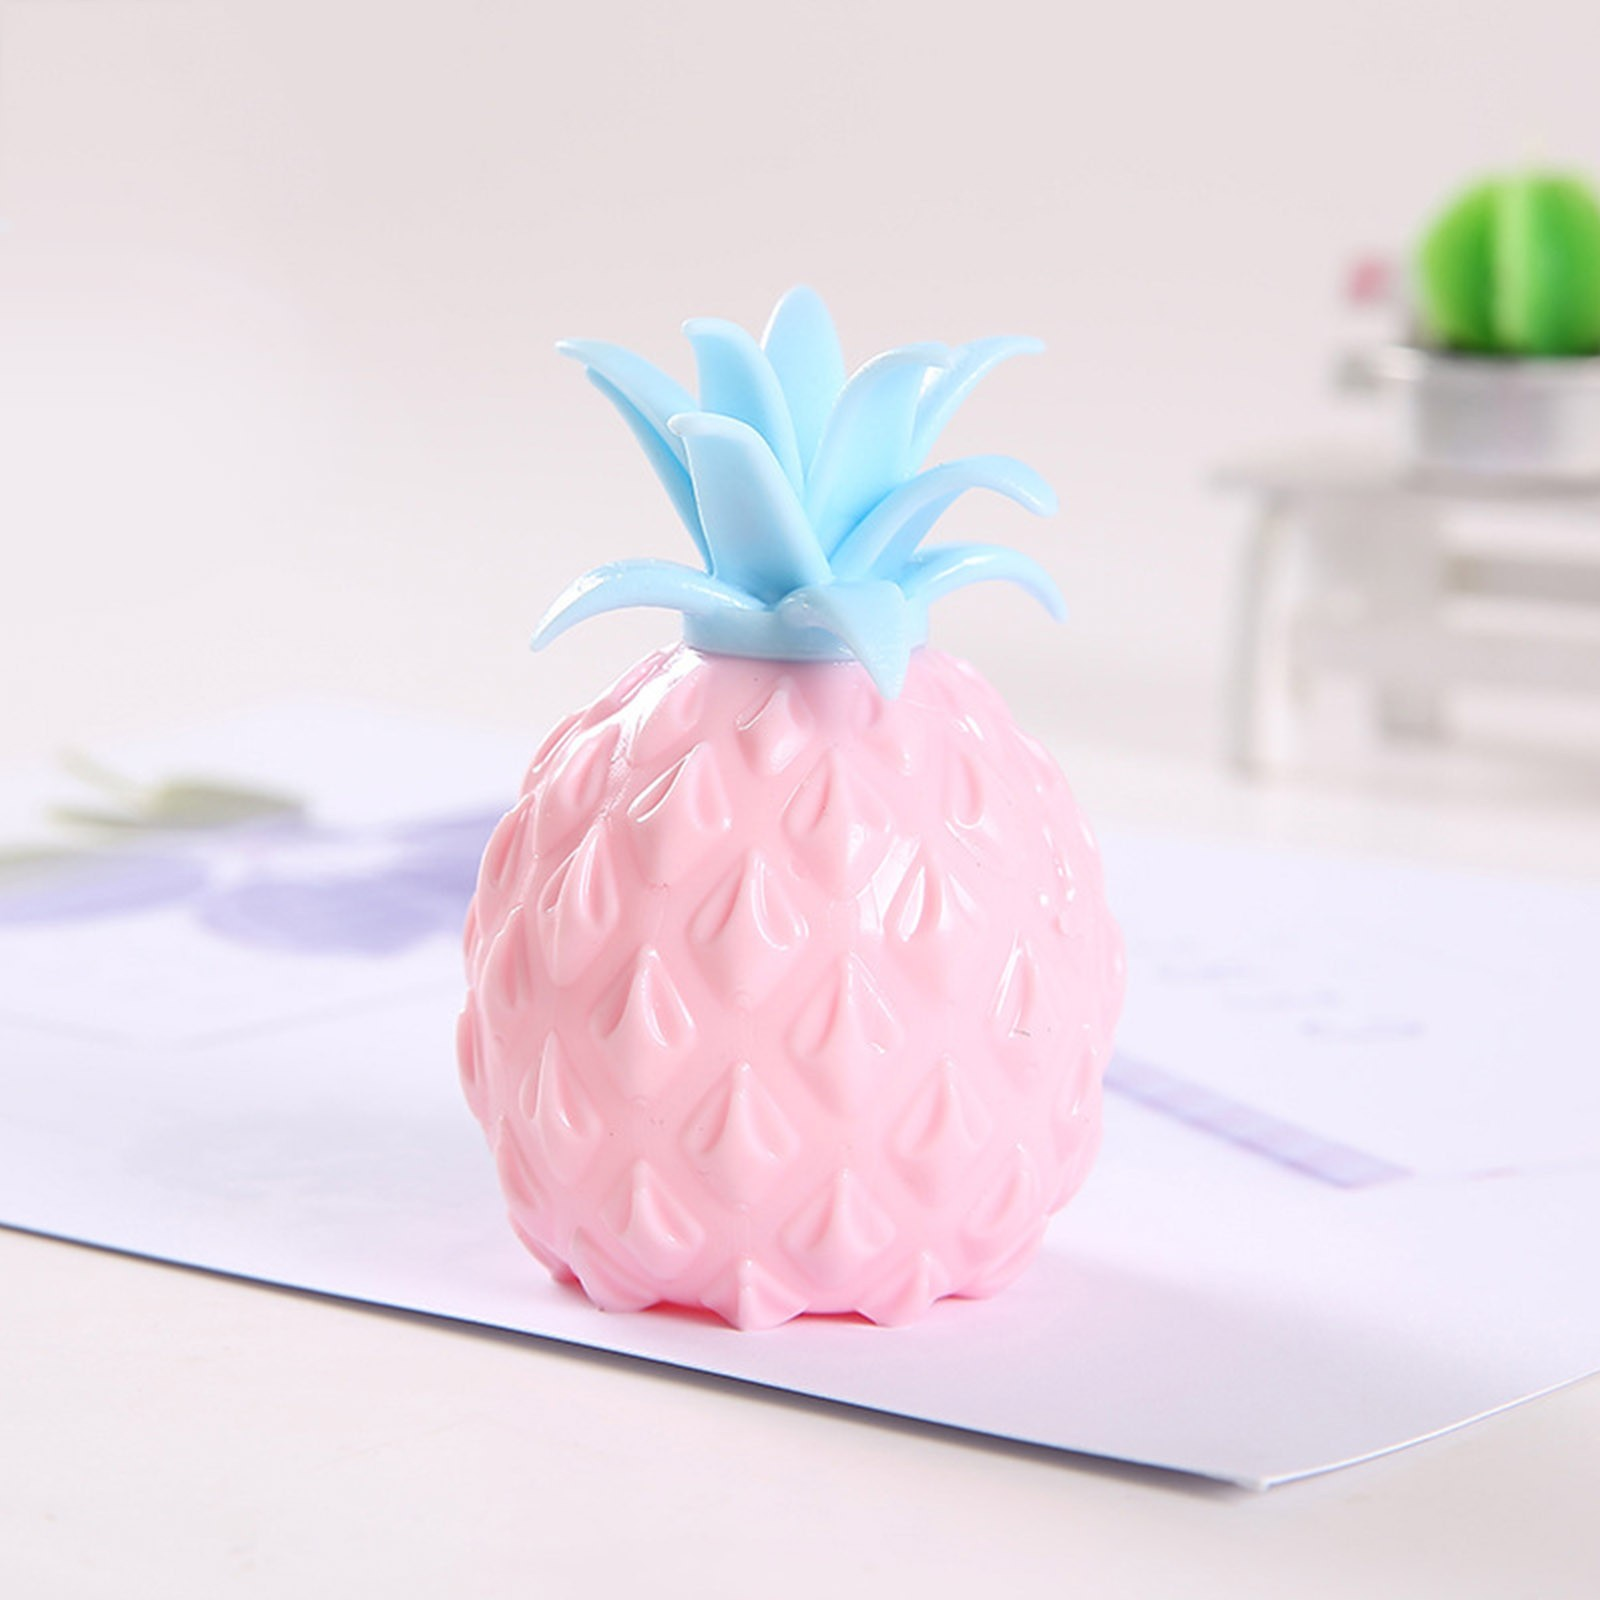 2021 Fidget Toys New Simulation Flour Pineapple Decompression Toy Office Pressure Release img5